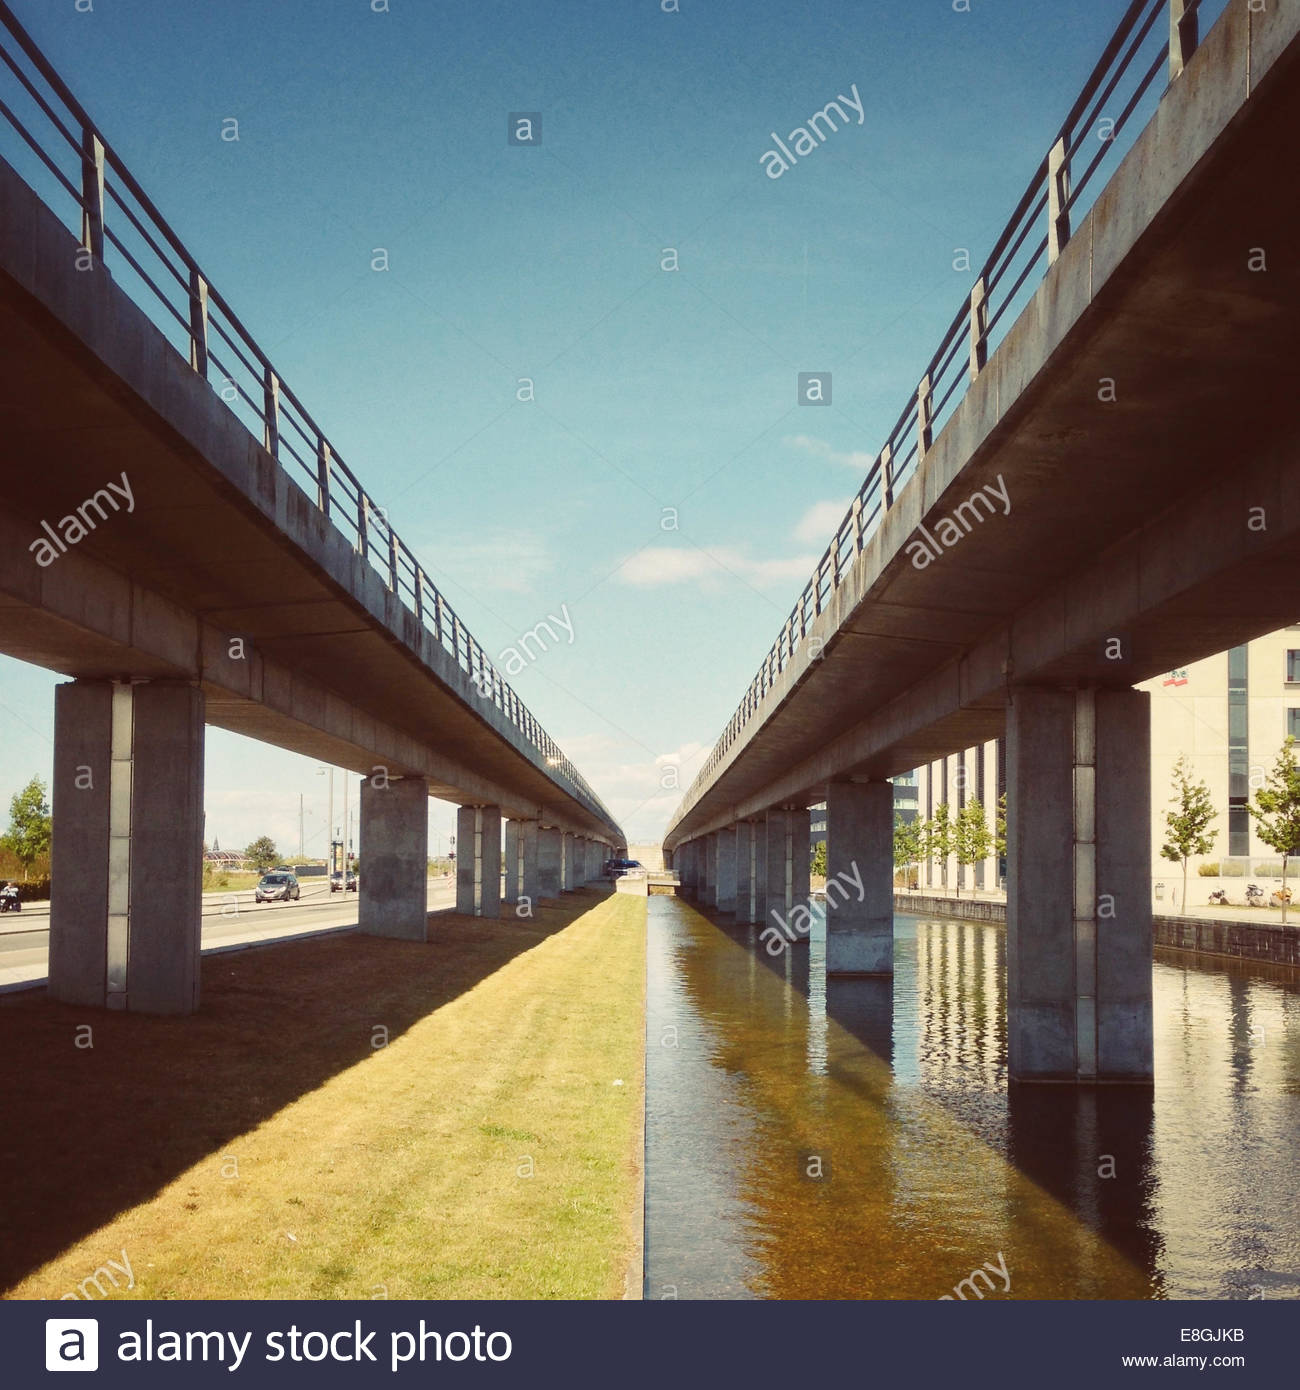 Denmark, Copenhagen, Elevated roads - Stock Image